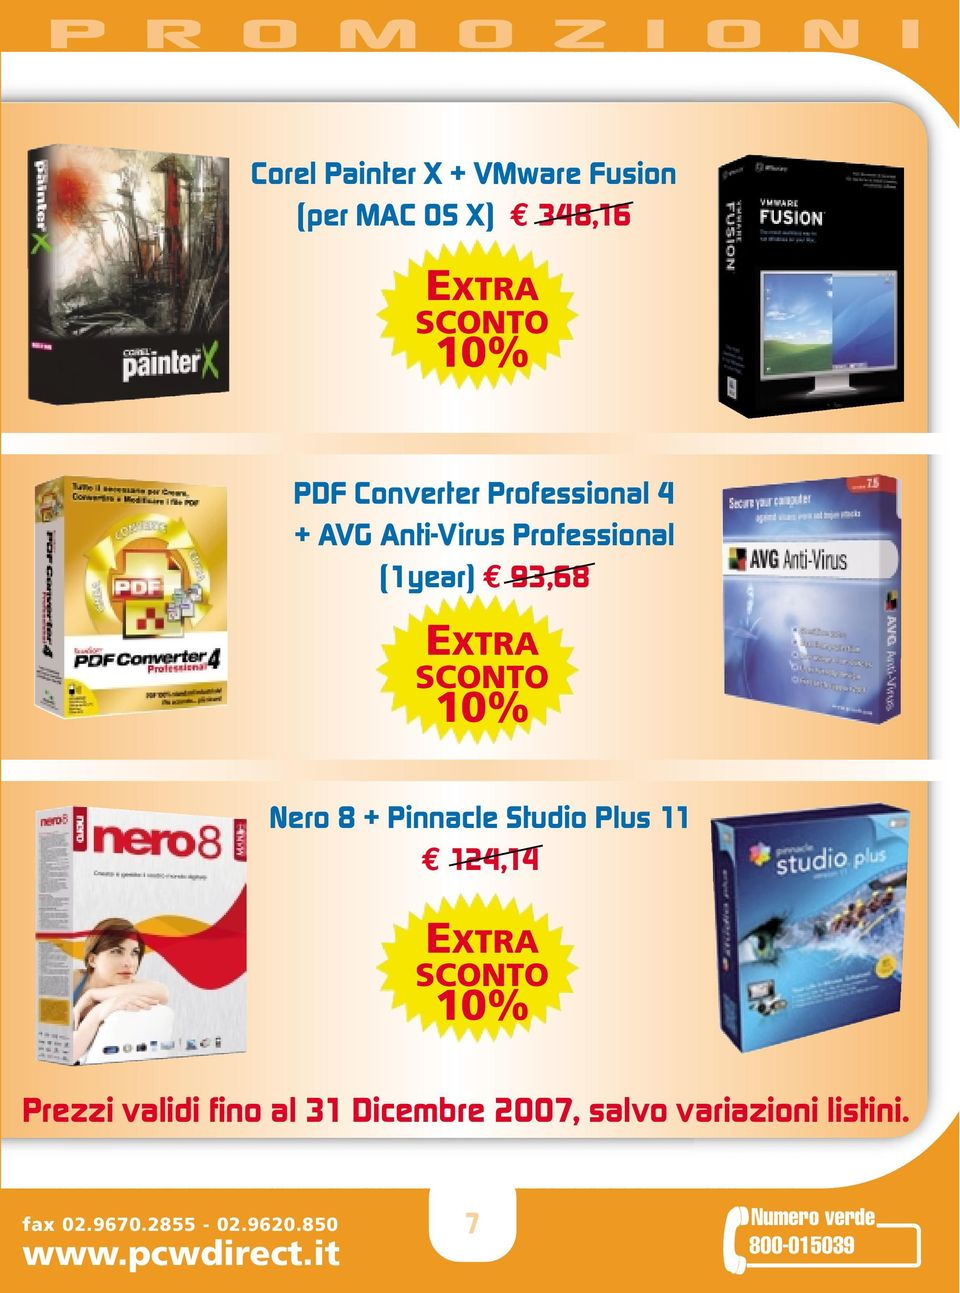 (1year) 93,68 EXTRA SCONTO 10% Nero 8 + Pinnacle Studio Plus 11 124,14